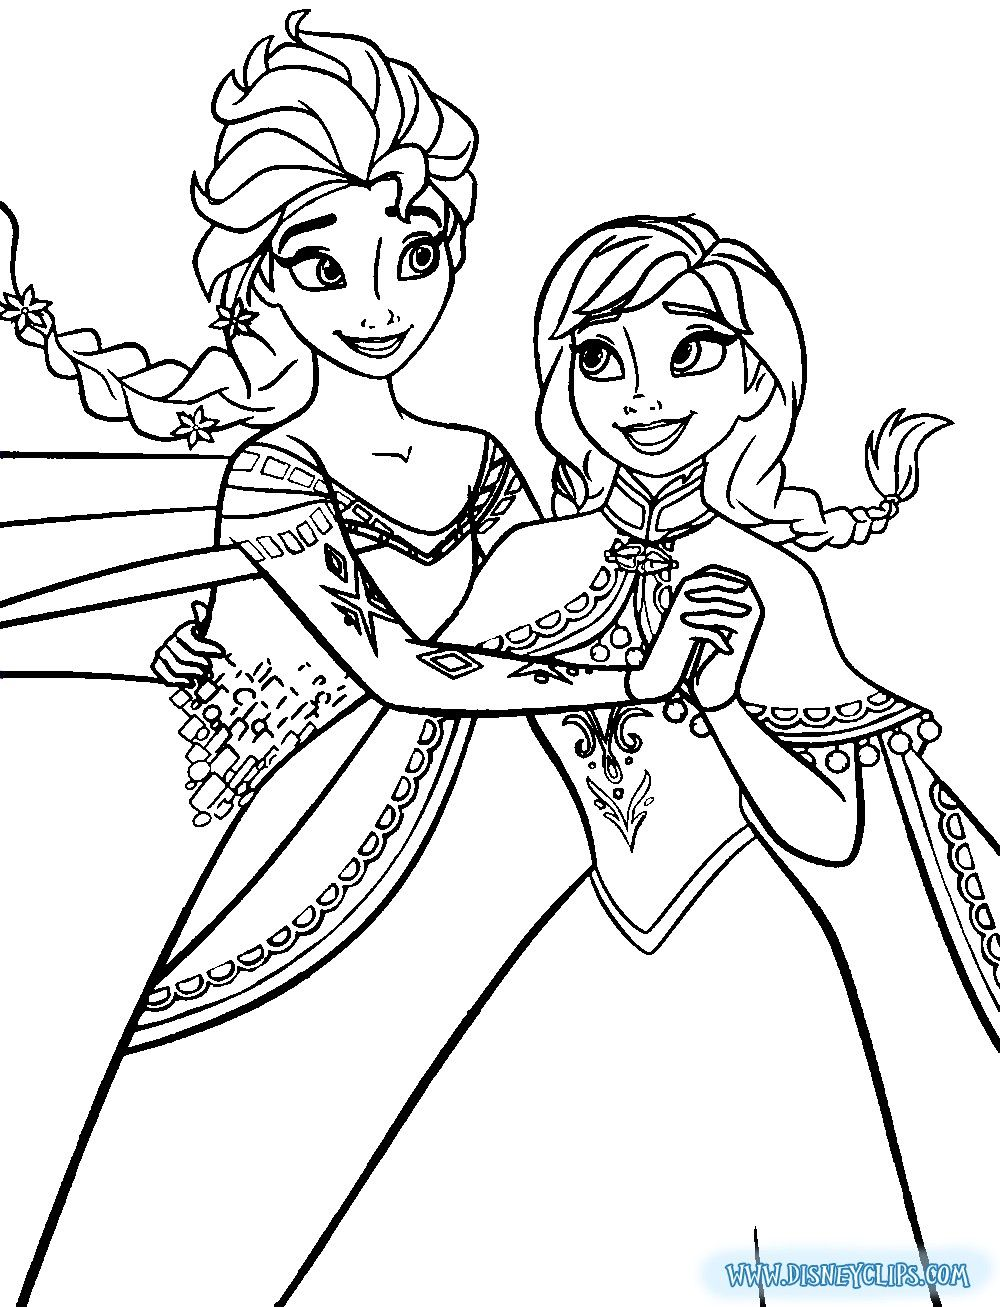 Princess Elsa Coloring Page From The Thousands Of Photos On The Net With Regards To Elsa Coloring Pages Disney Princess Coloring Pages Frozen Coloring Pages